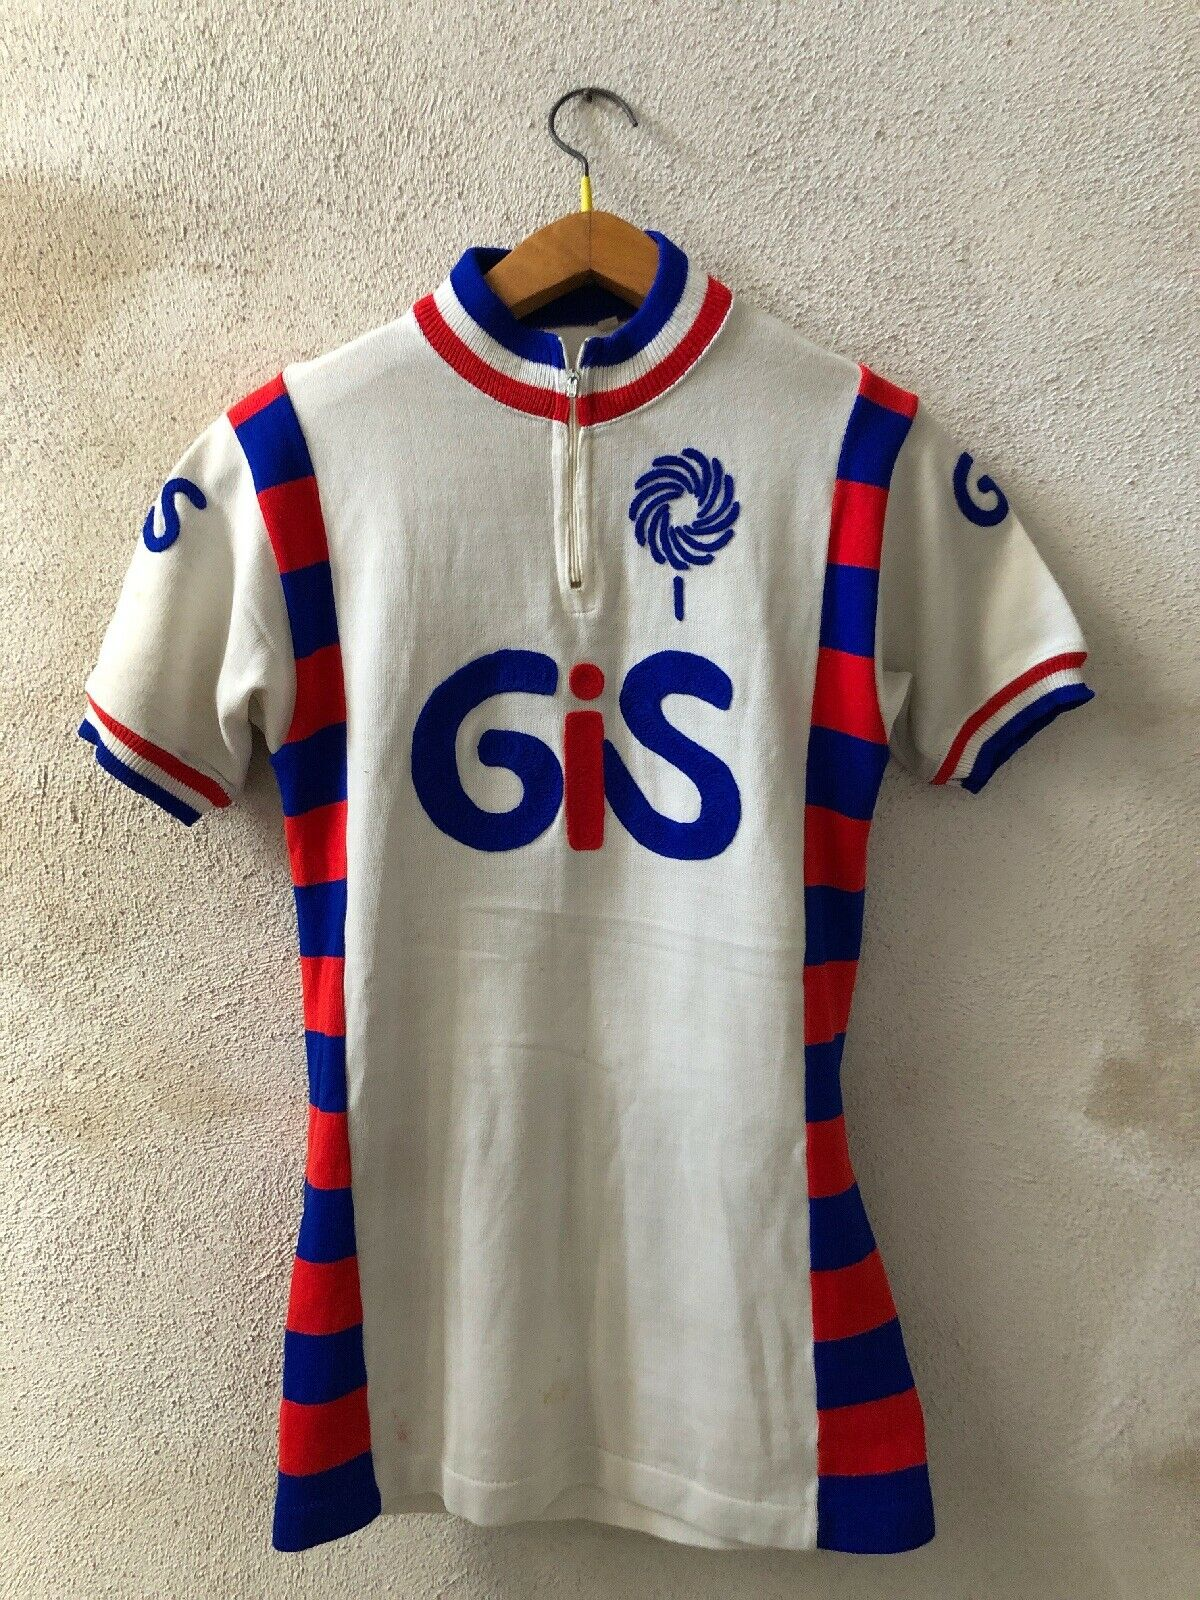 Maglia Cycling Jersey Cucles GIS vintage 70-80s Tg 3